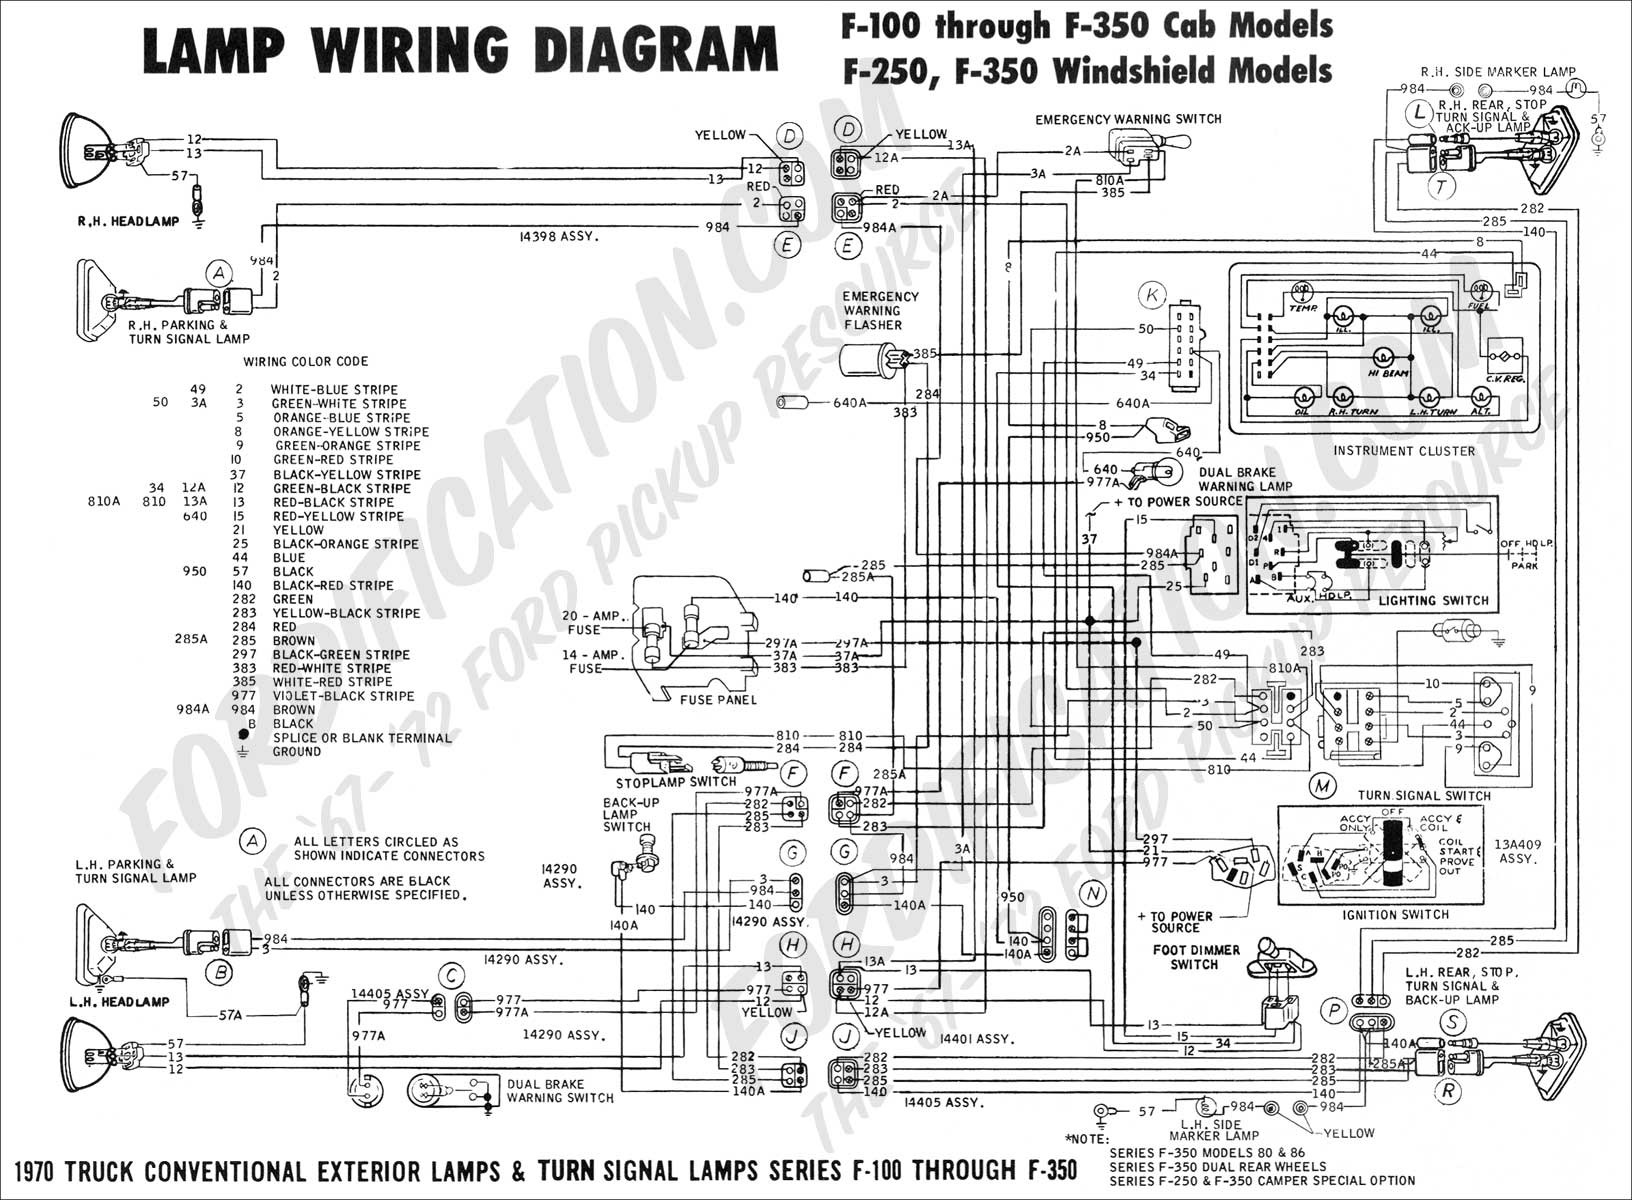 f350 wiring harness 99 f350 trailer wiring 99 image wiring diagram ford f 250 trailer wiring harness ford auto